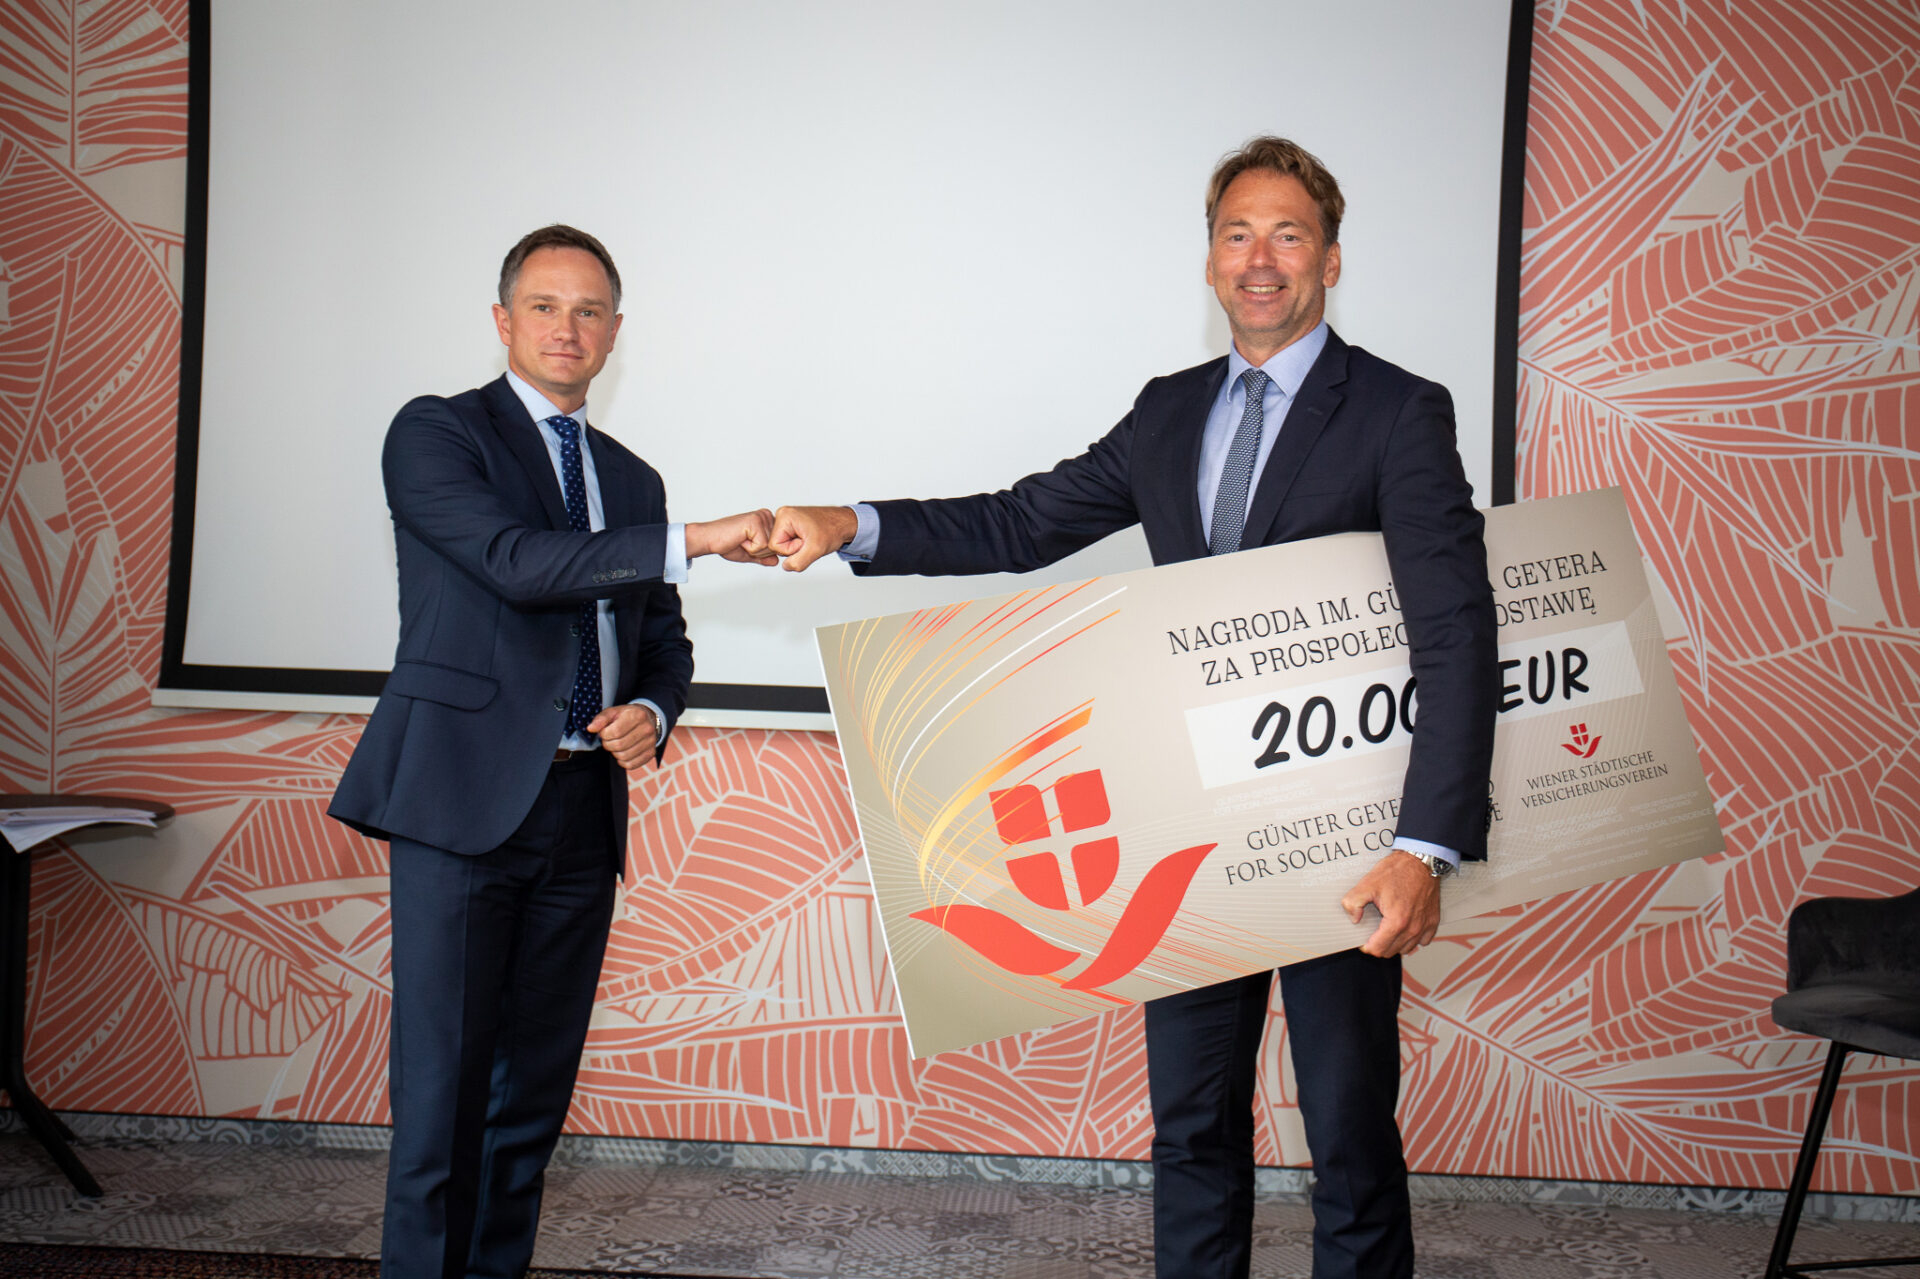 From left to right: Vienna Life CEO Tomasz Borowski and VIG Managing Board Member Harald Riener.  © Vienna Life TU na Życie S.A Vienna Insurance Group